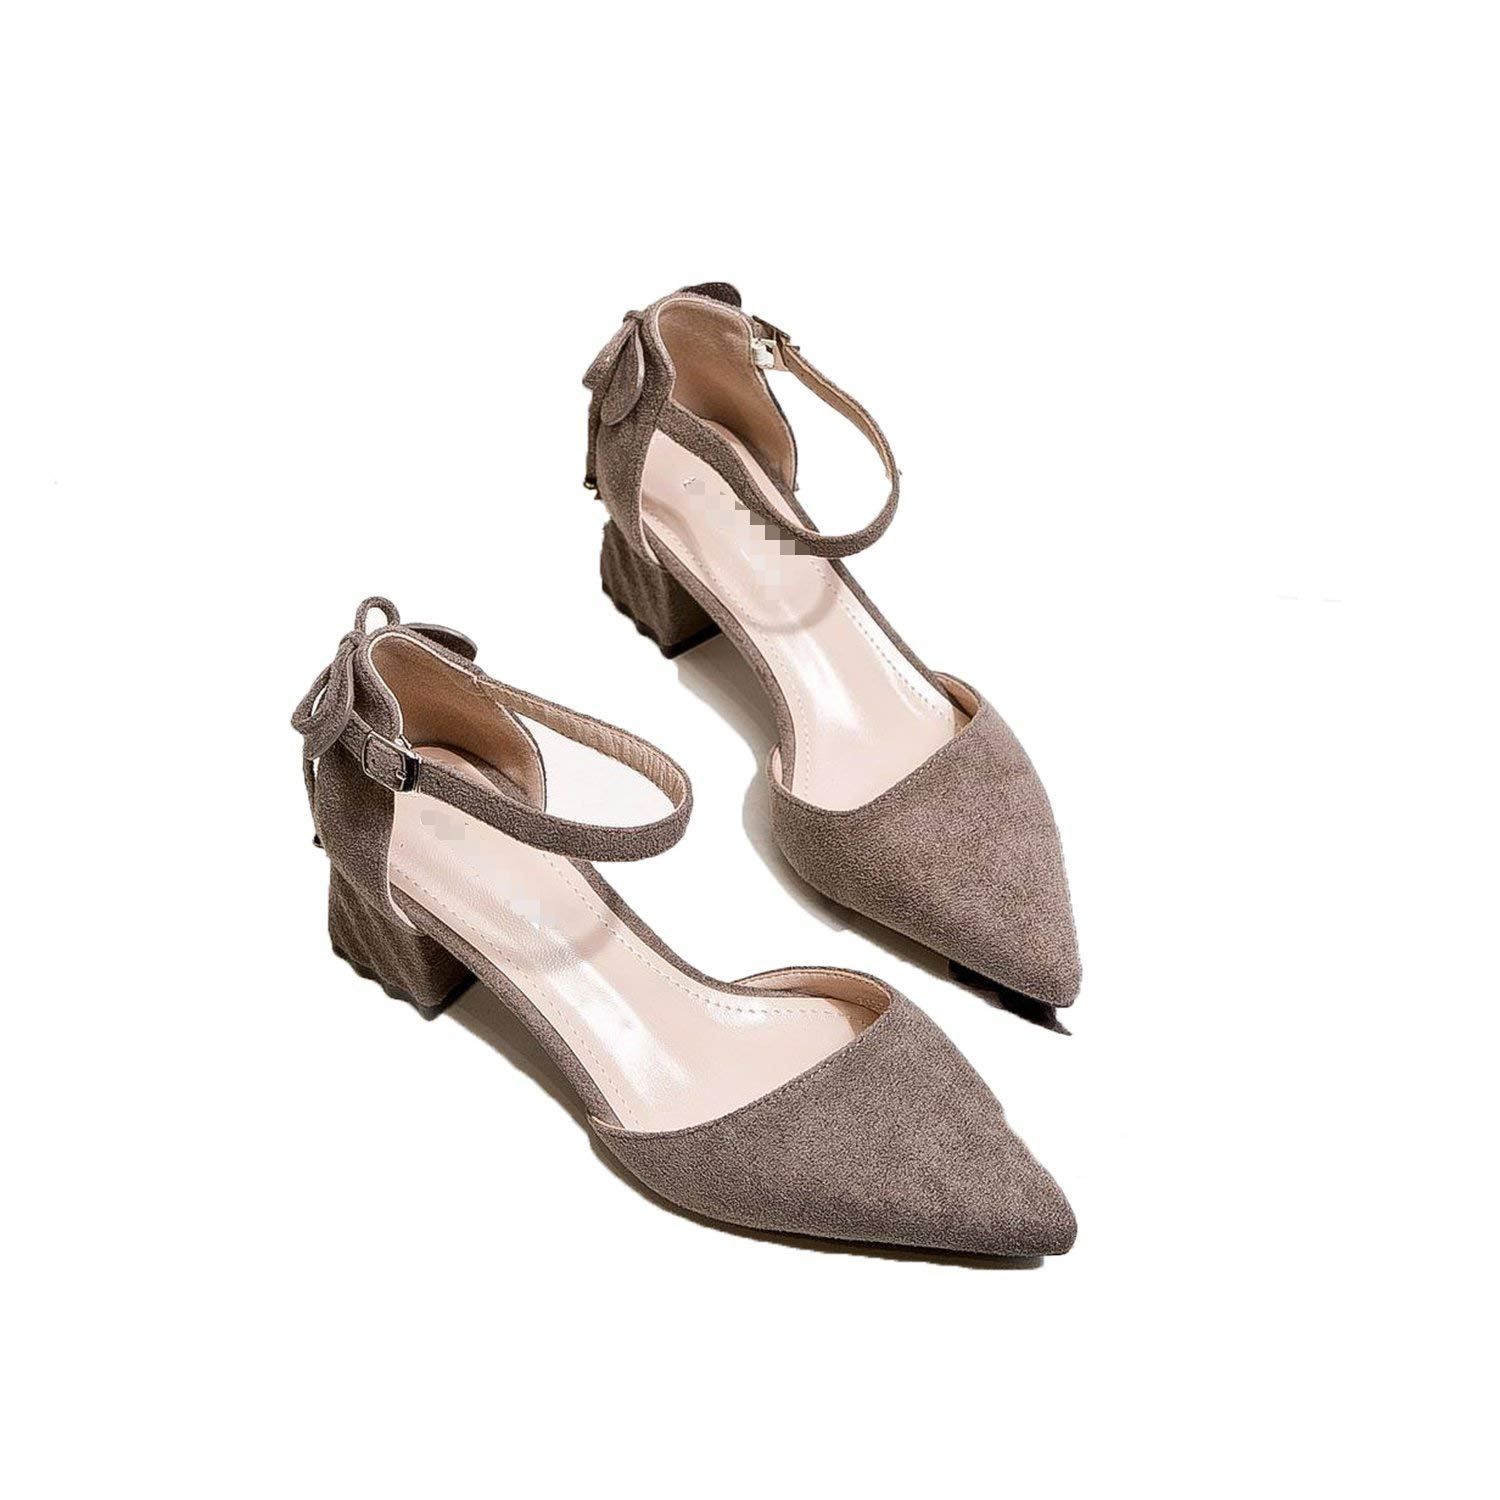 552be4d1e Get Quotations · Special-Shop Shoes Wild Lace Pointed Heel Shoes Hollow  Shallow Mouth Shoes